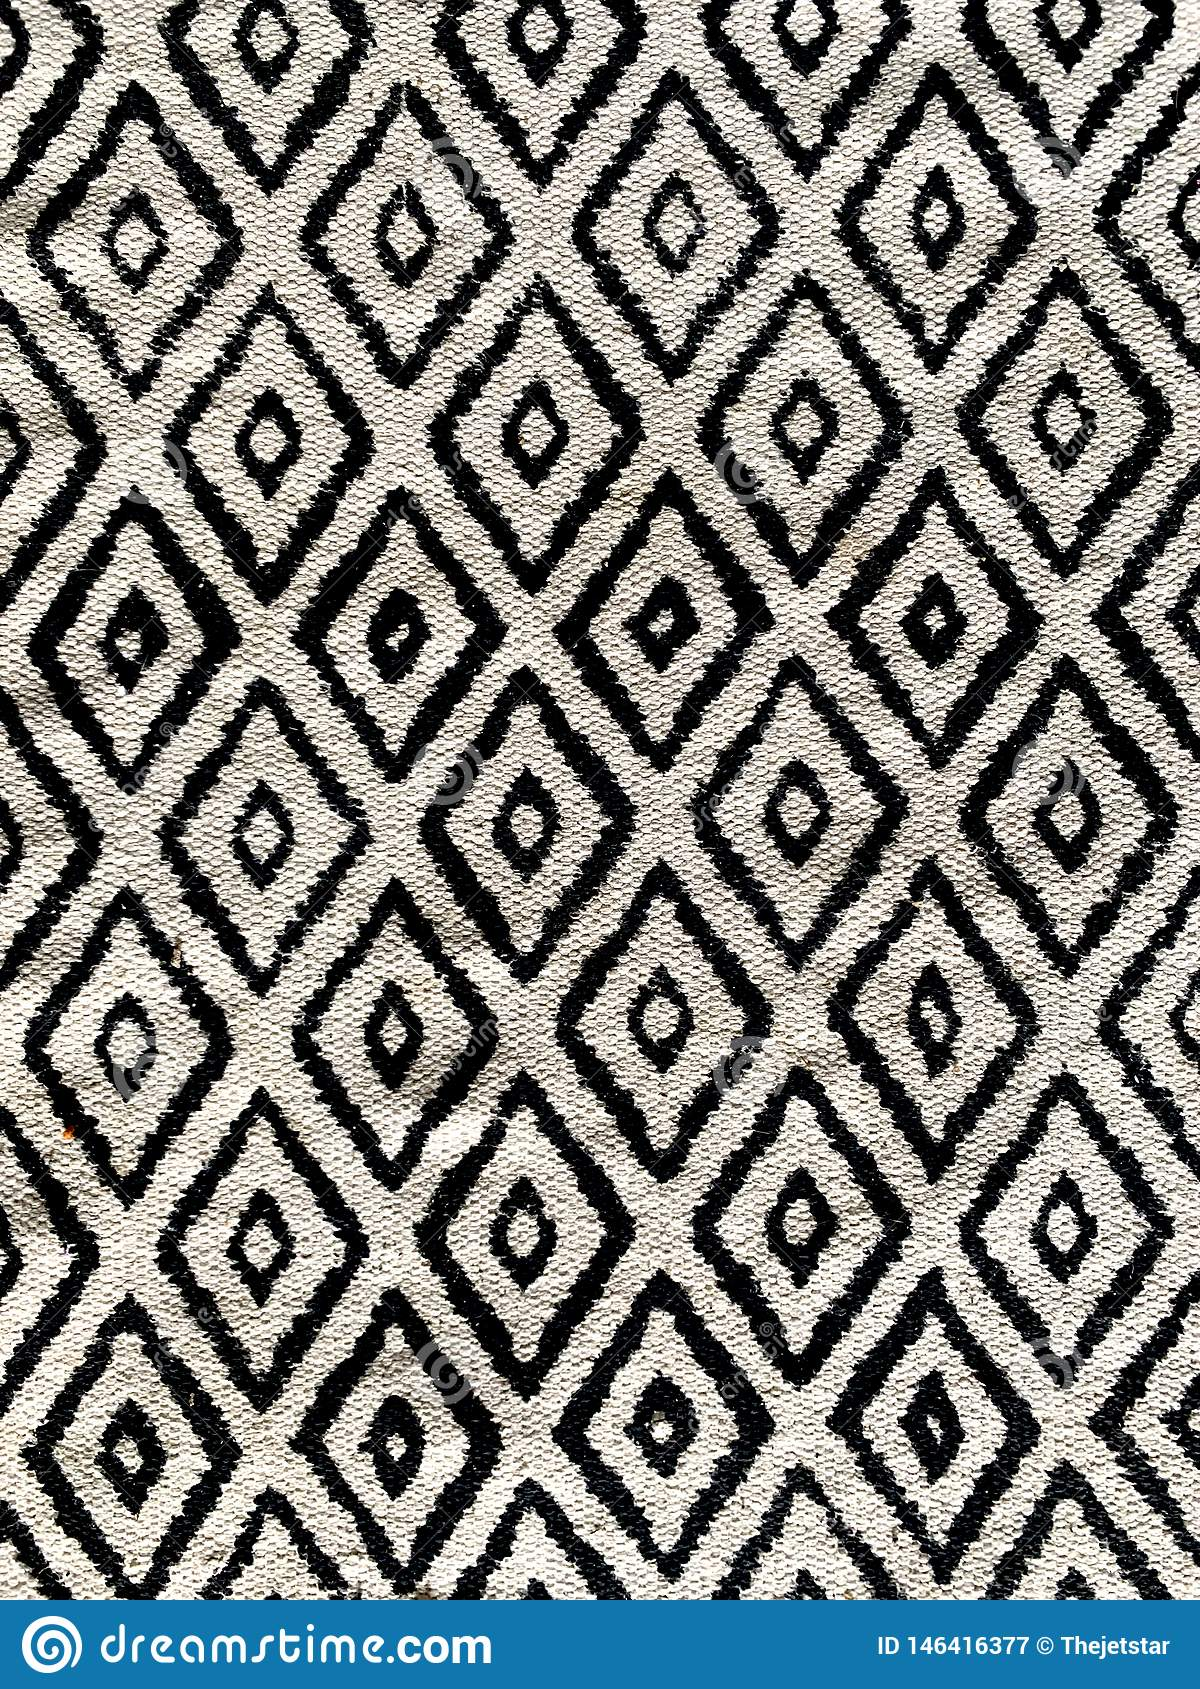 High Contrast Diamond Pattern Black And White Throw Rug